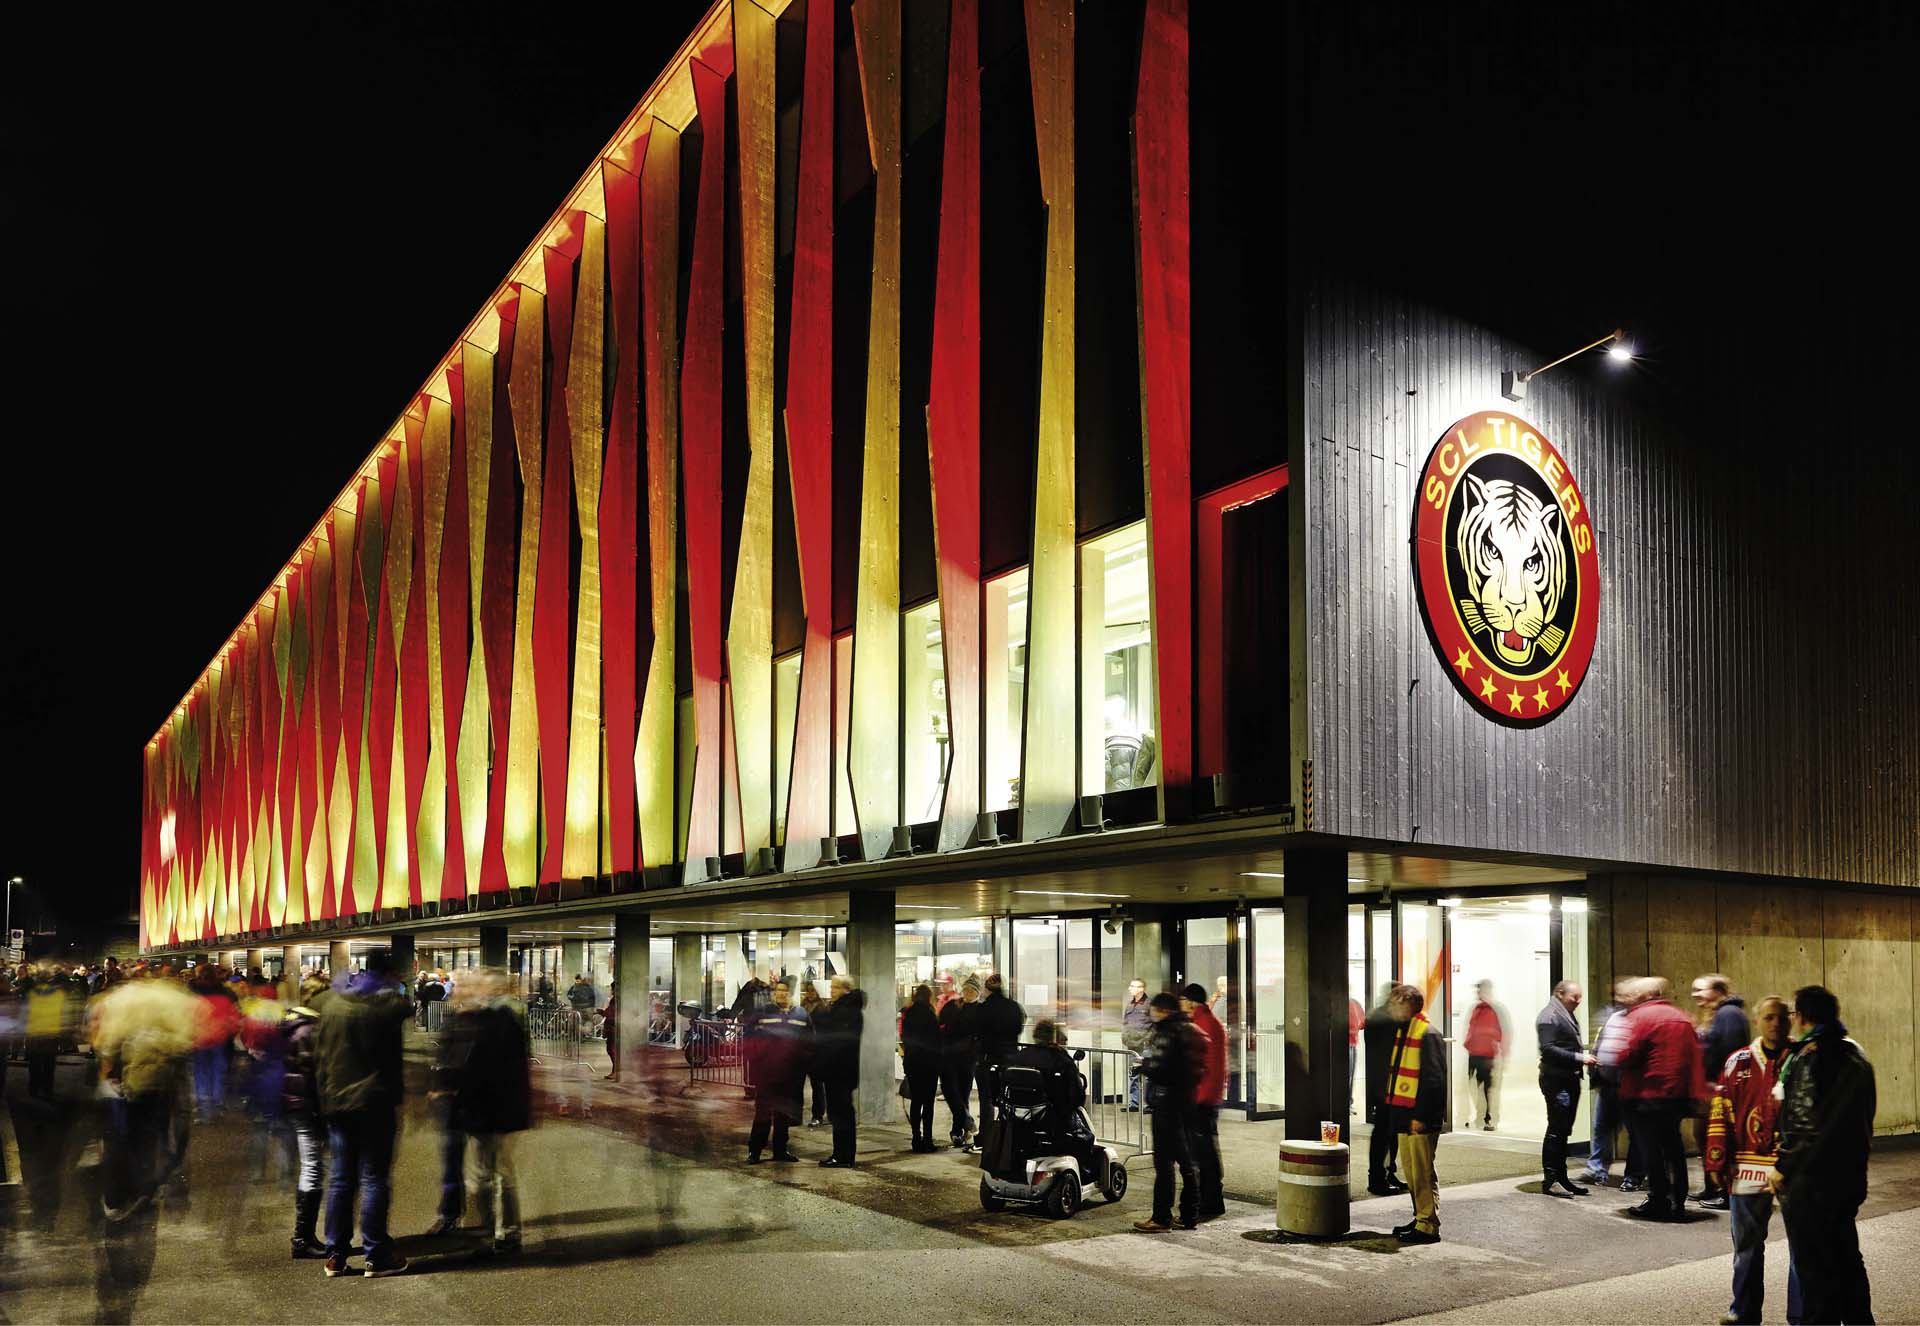 The reconstructed Ilfis Hall at night before a SCL Tigers ice hockey match